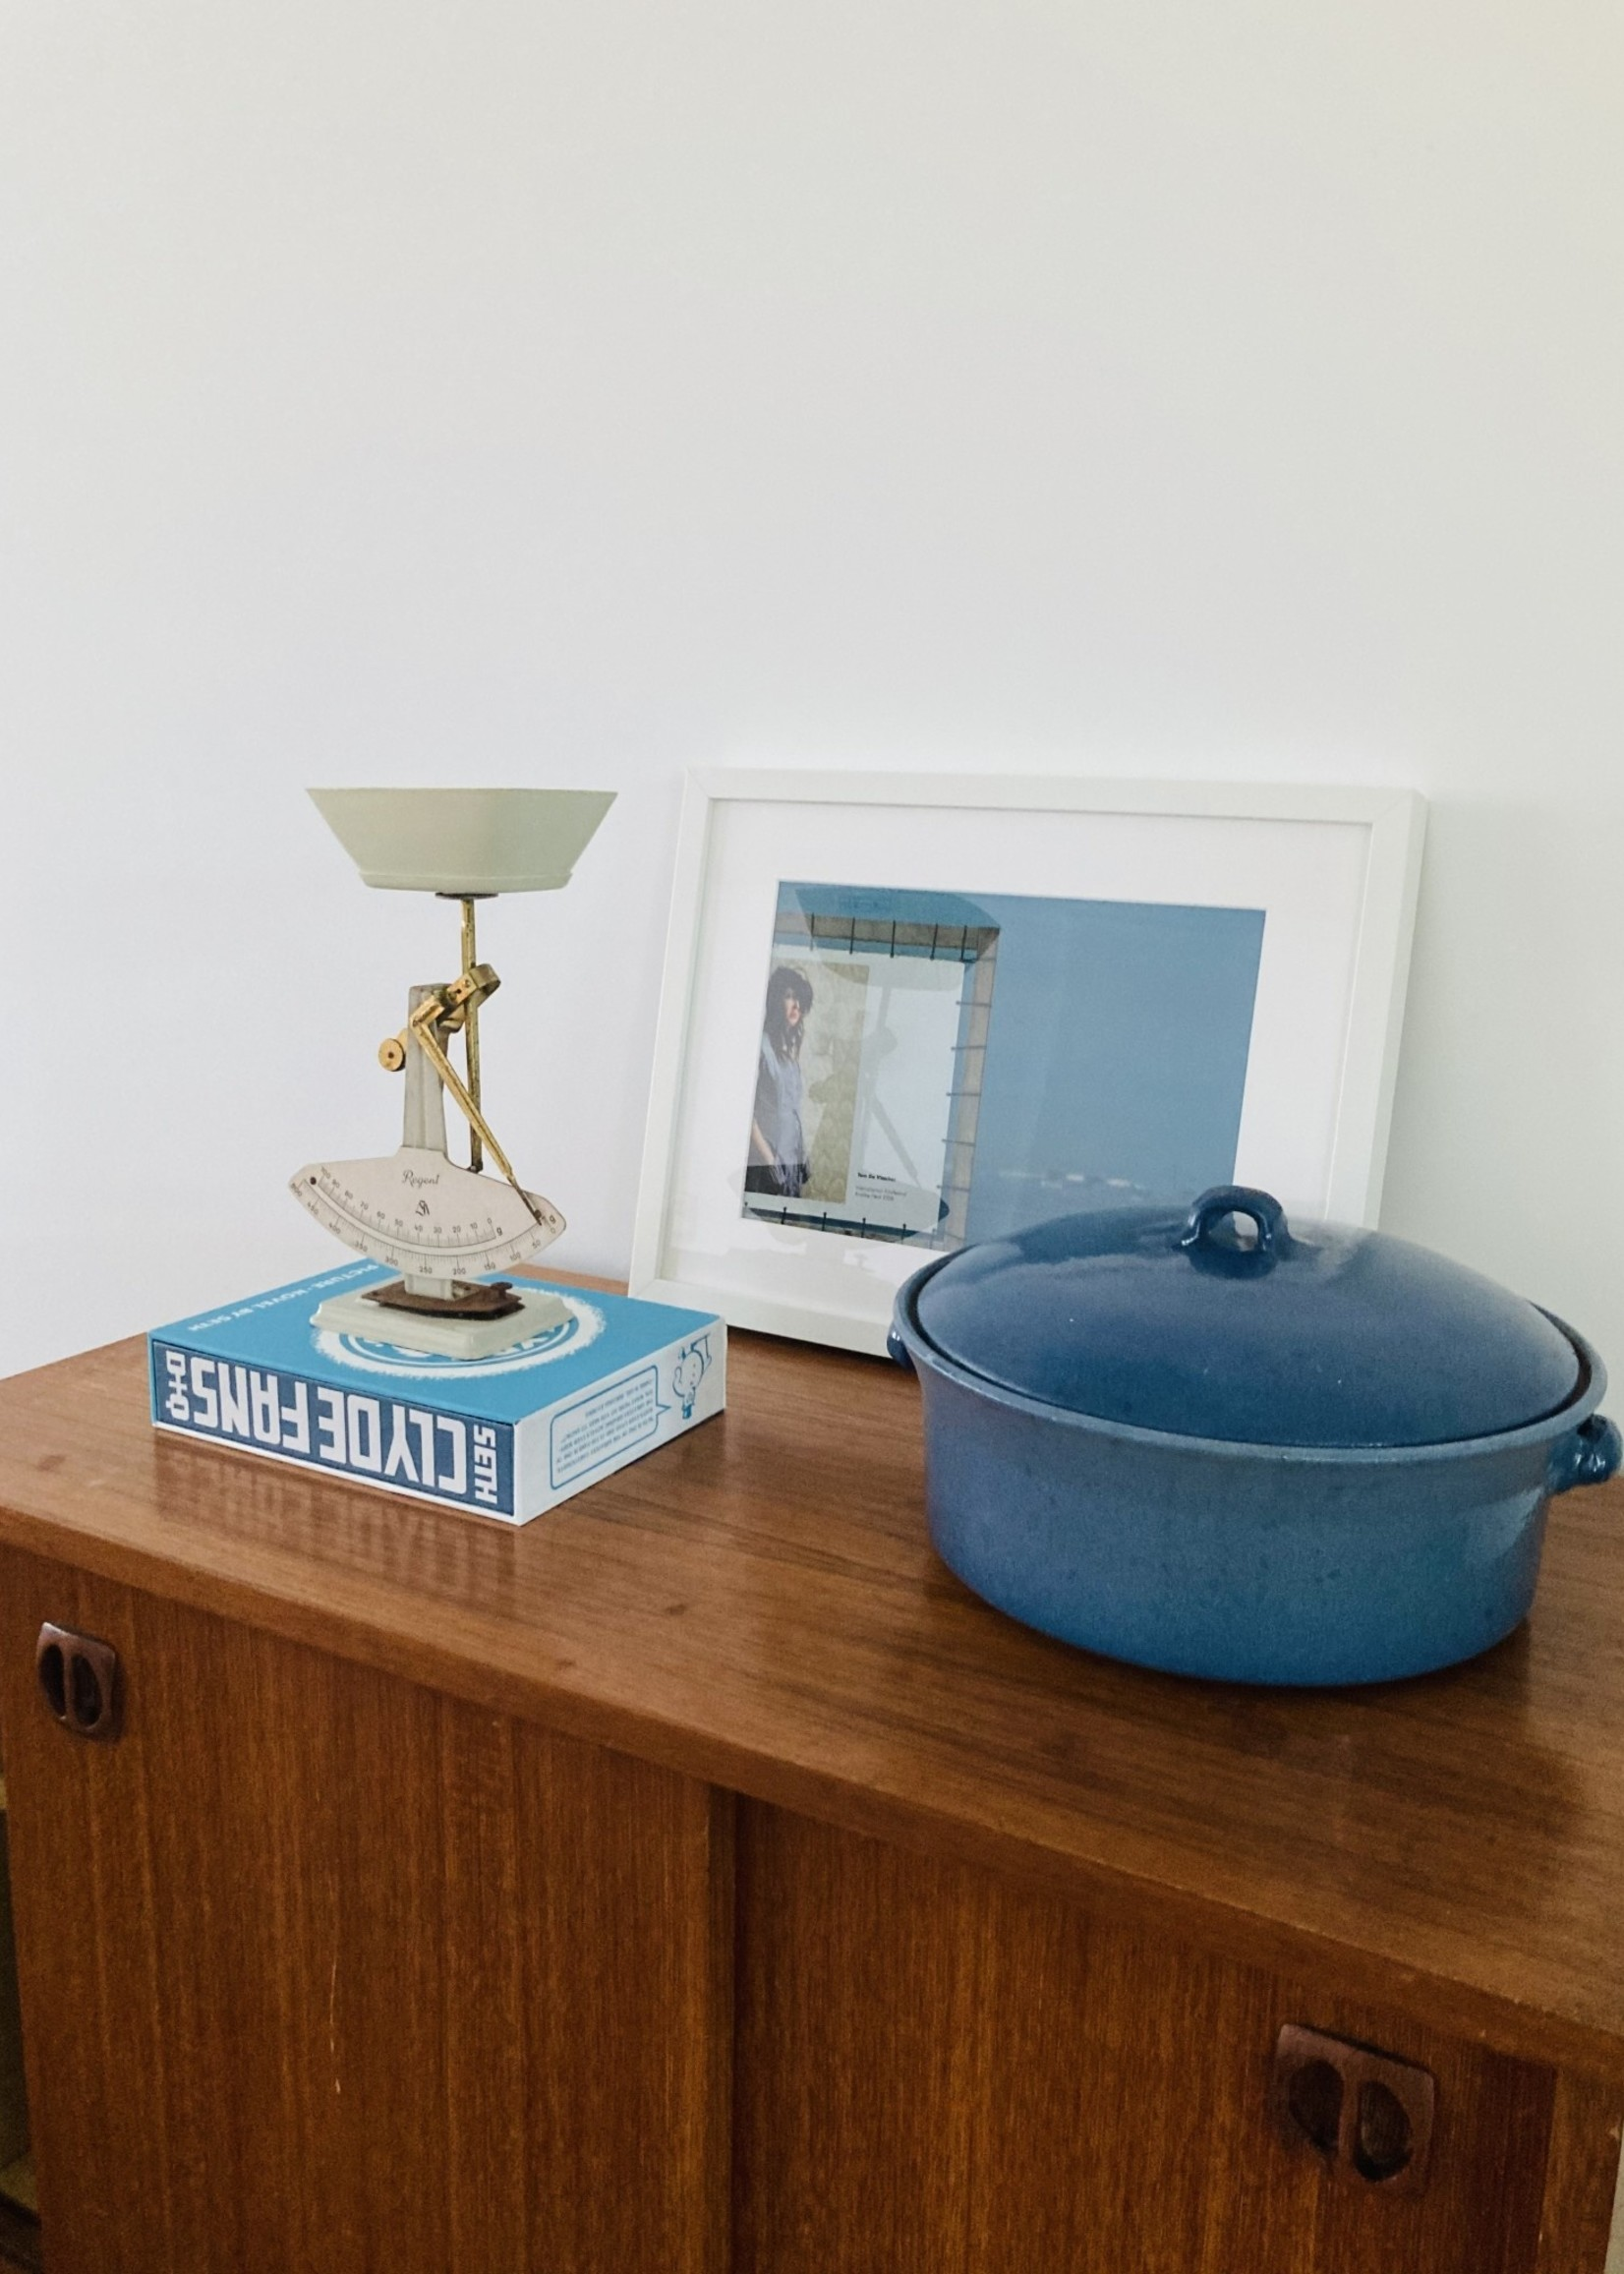 Terracotta dish enamelled in turquoise blue